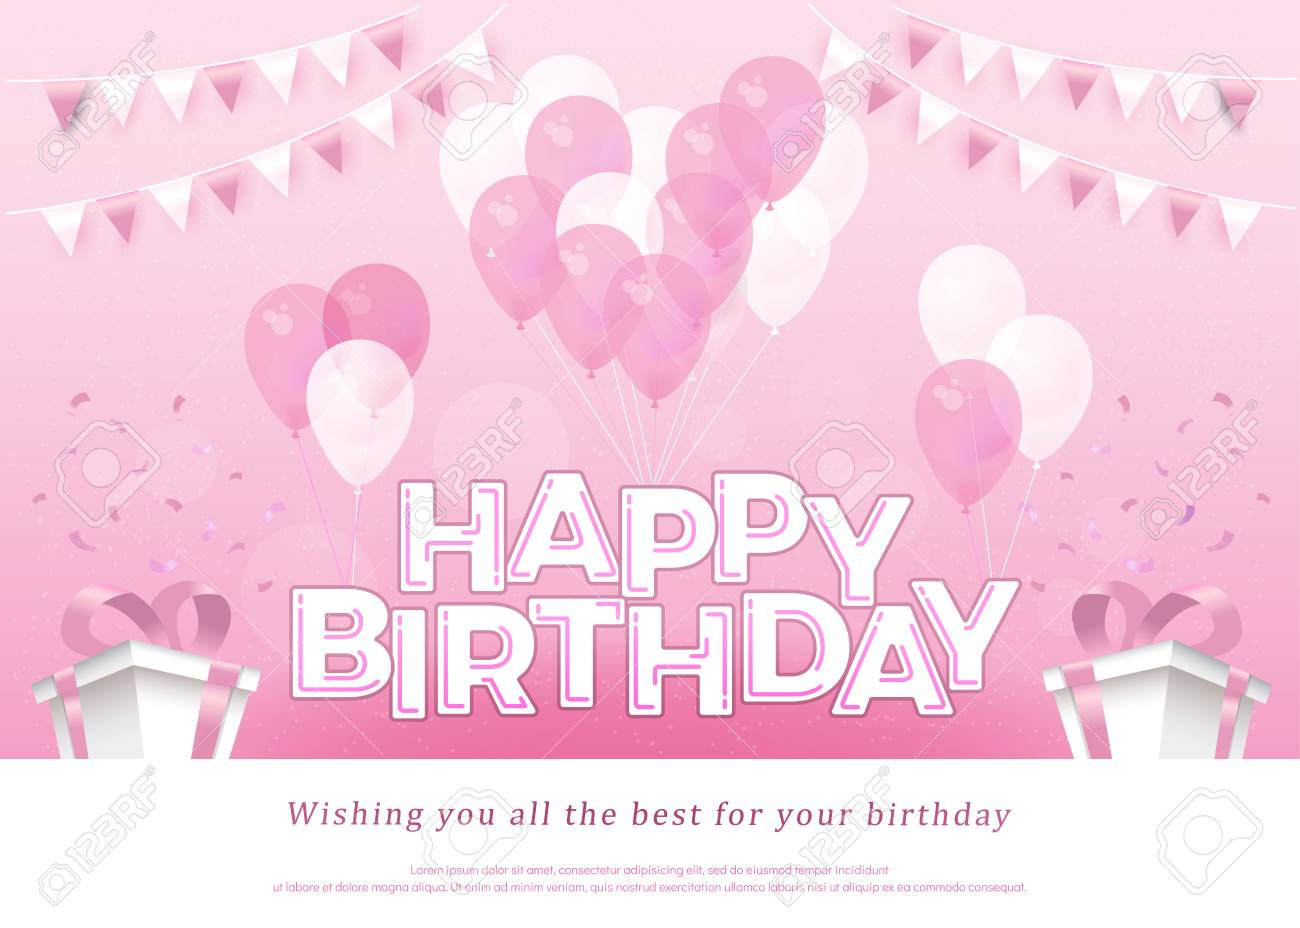 Happy Birthday Pink Greeting Card Lettering Template With Balloon ...